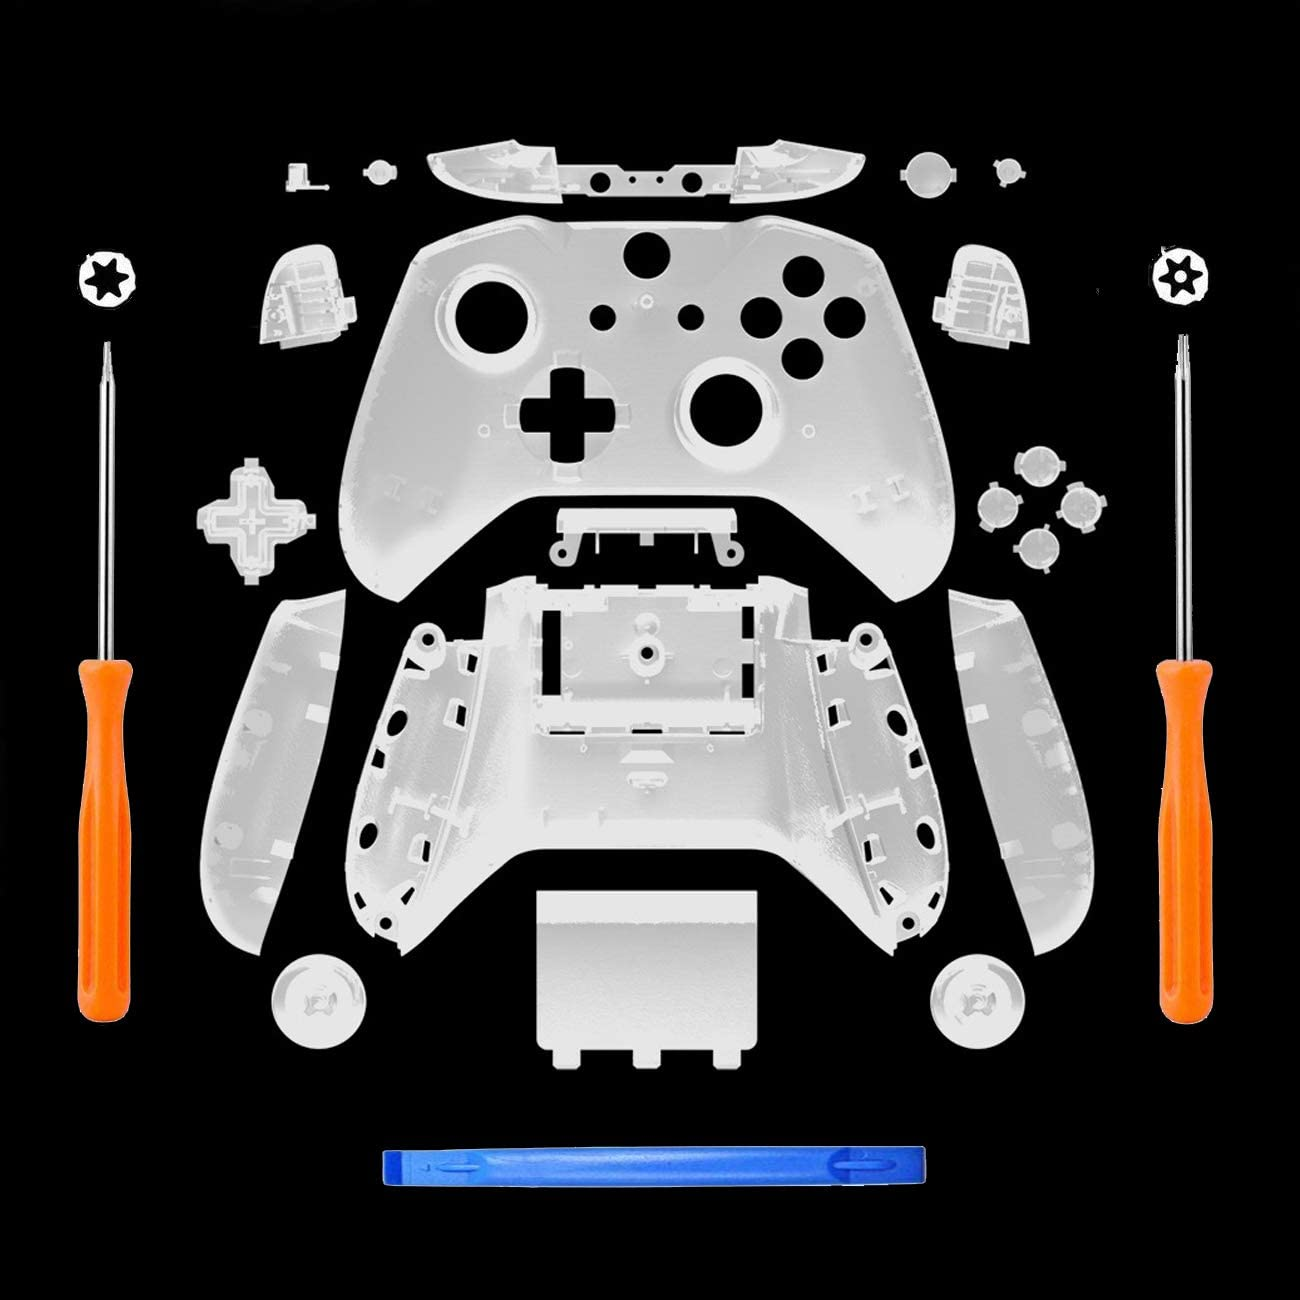 SN-RIGGOR Replacement Housing Full Shell Set Full Buttons Set Faceplates ABXY Buttons RB LB Bumpers for Xbox One S Slim Controller (3.5 mm Headphone Jack) S Controller Repair Parts (Clear)